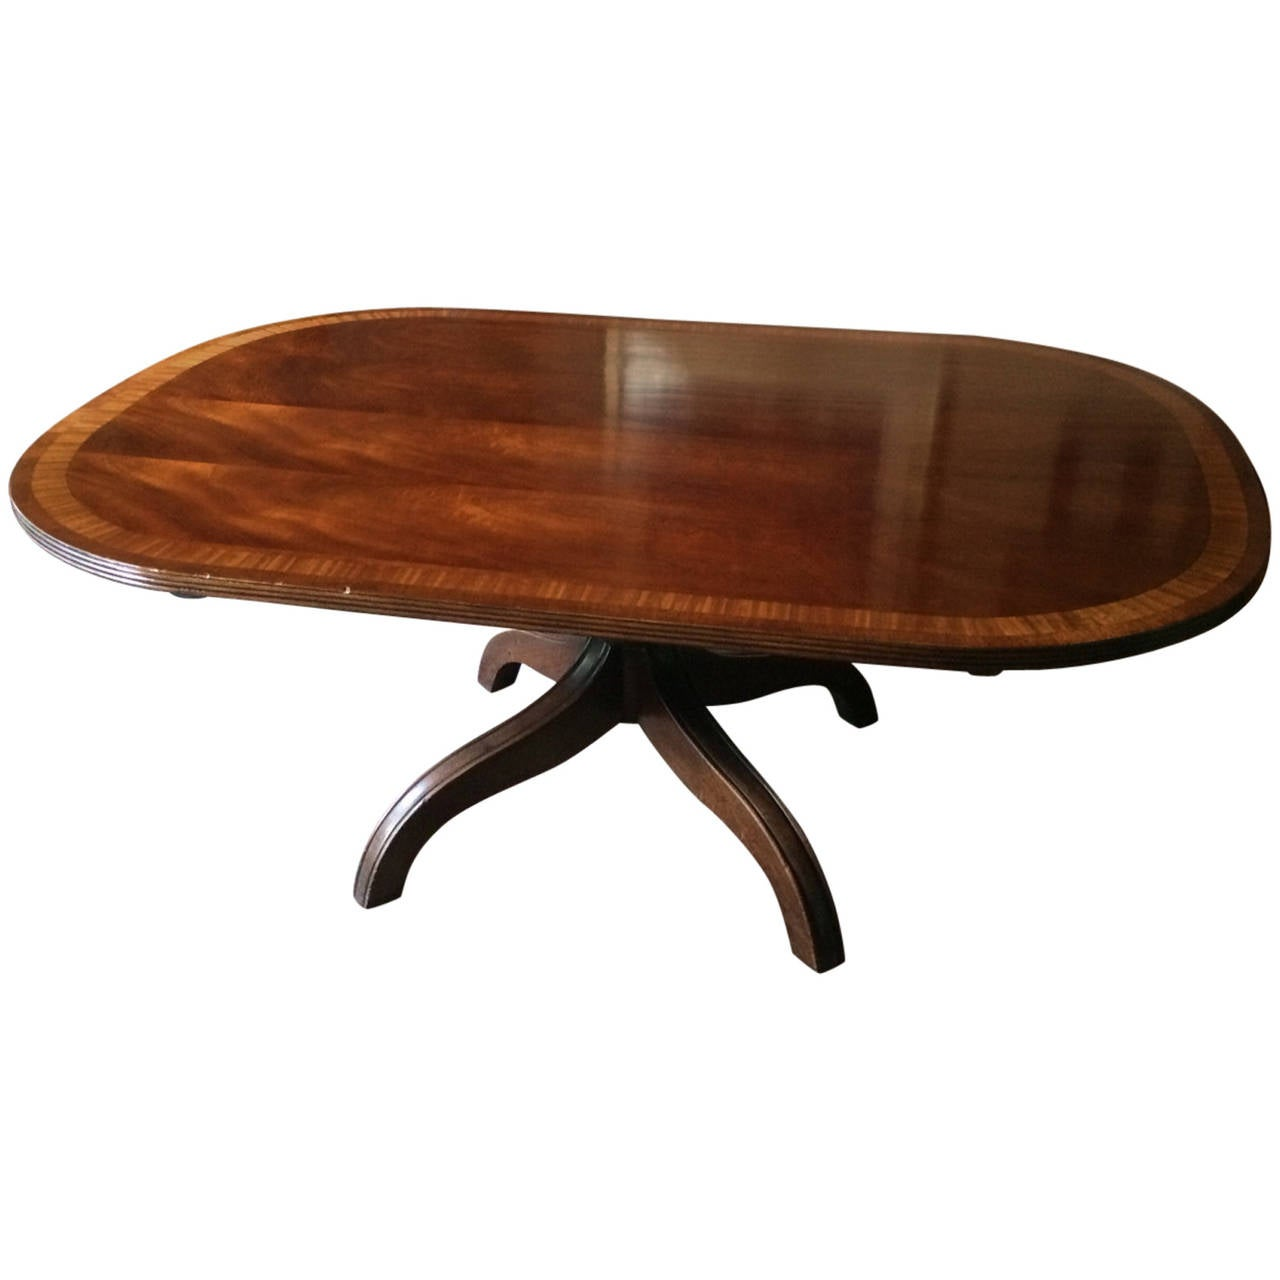 Antique mahogany and rosewood oblong coffee table at 1stdibs antique mahogany and rosewood oblong coffee table 1 geotapseo Choice Image